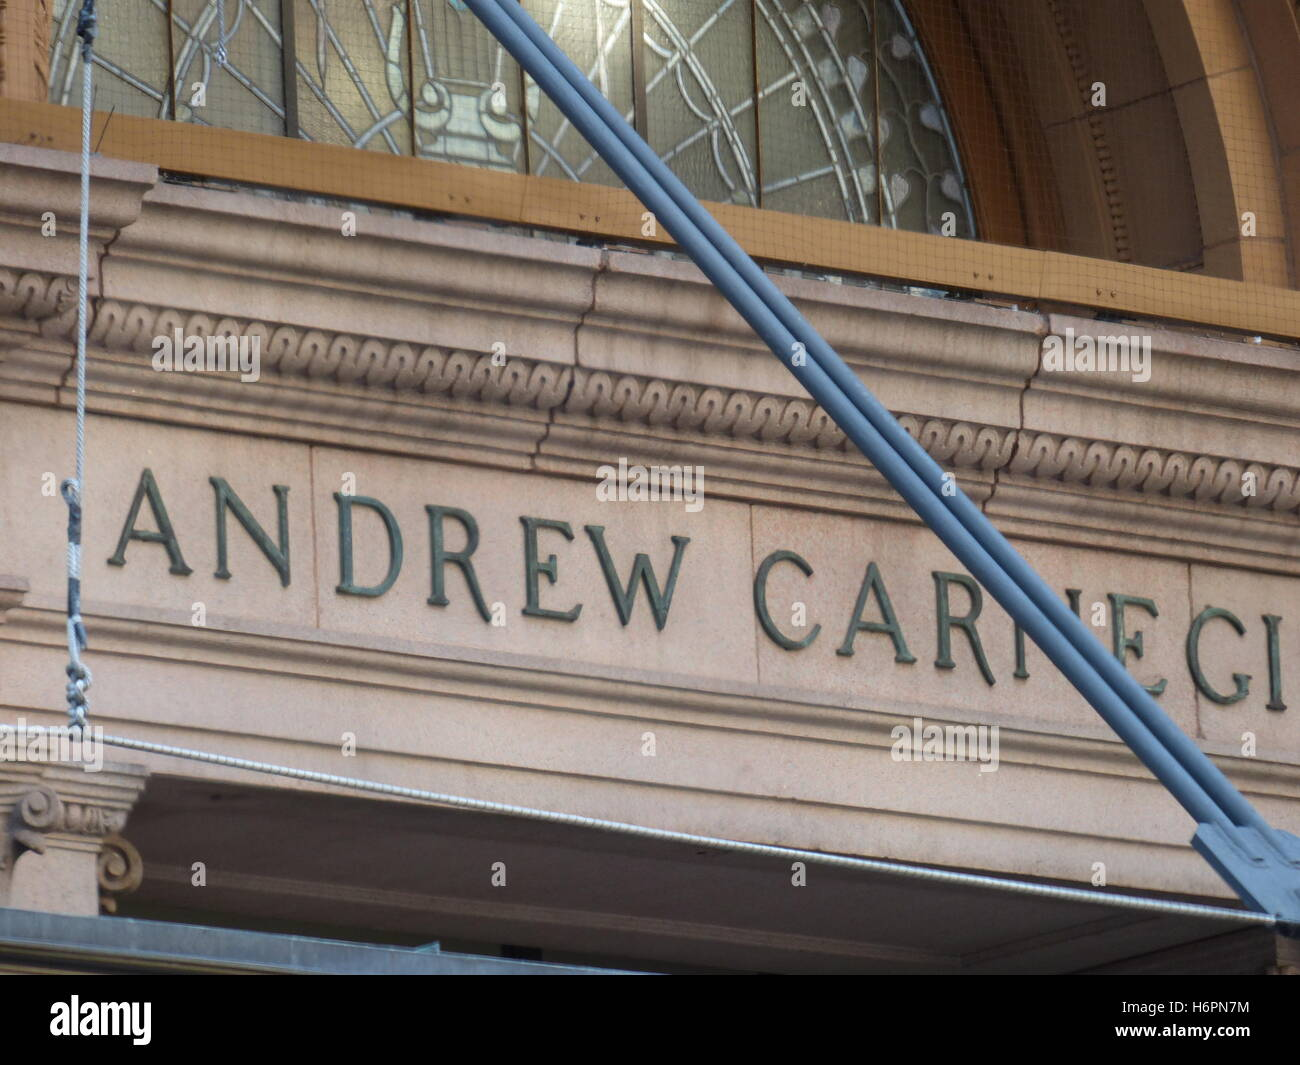 Carnegie Hall on West 57th Street - Stock Image